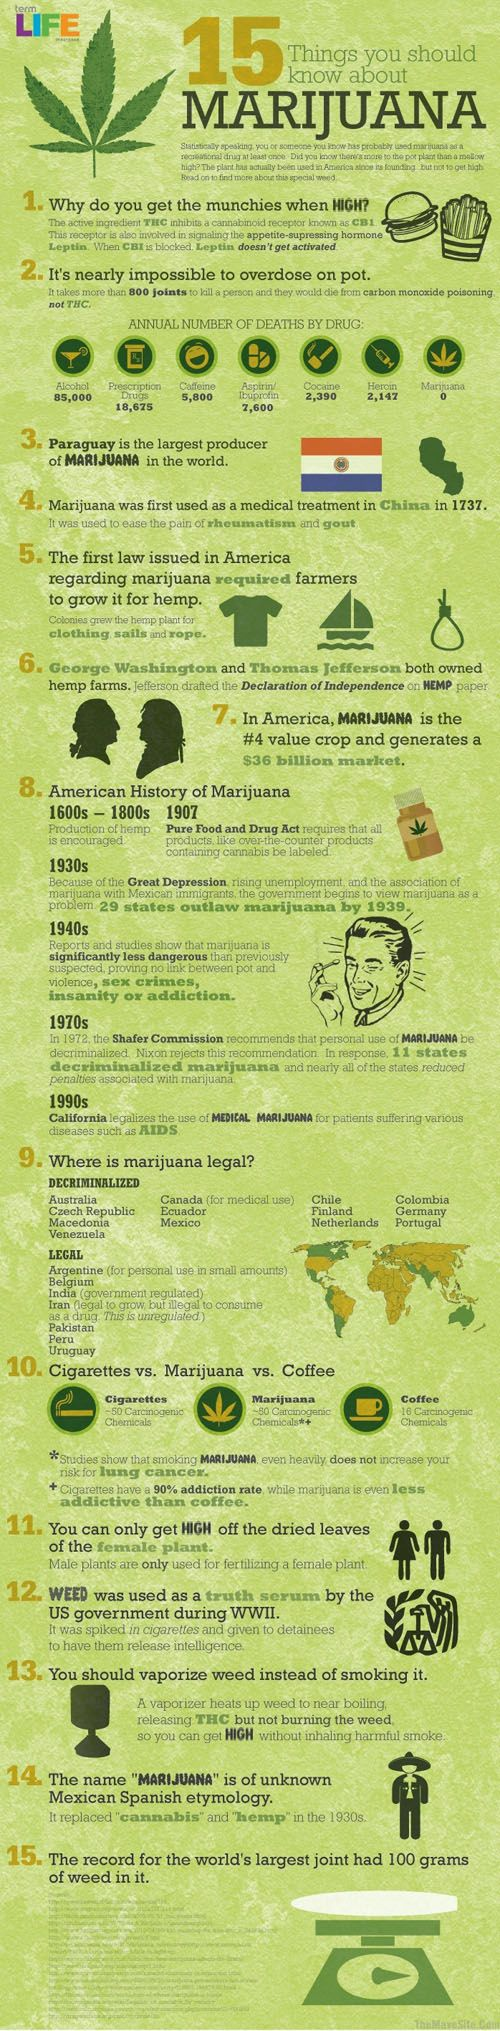 15 Things to Know About Marijuana – Infographic on http://www.bestinfographic.co.uk